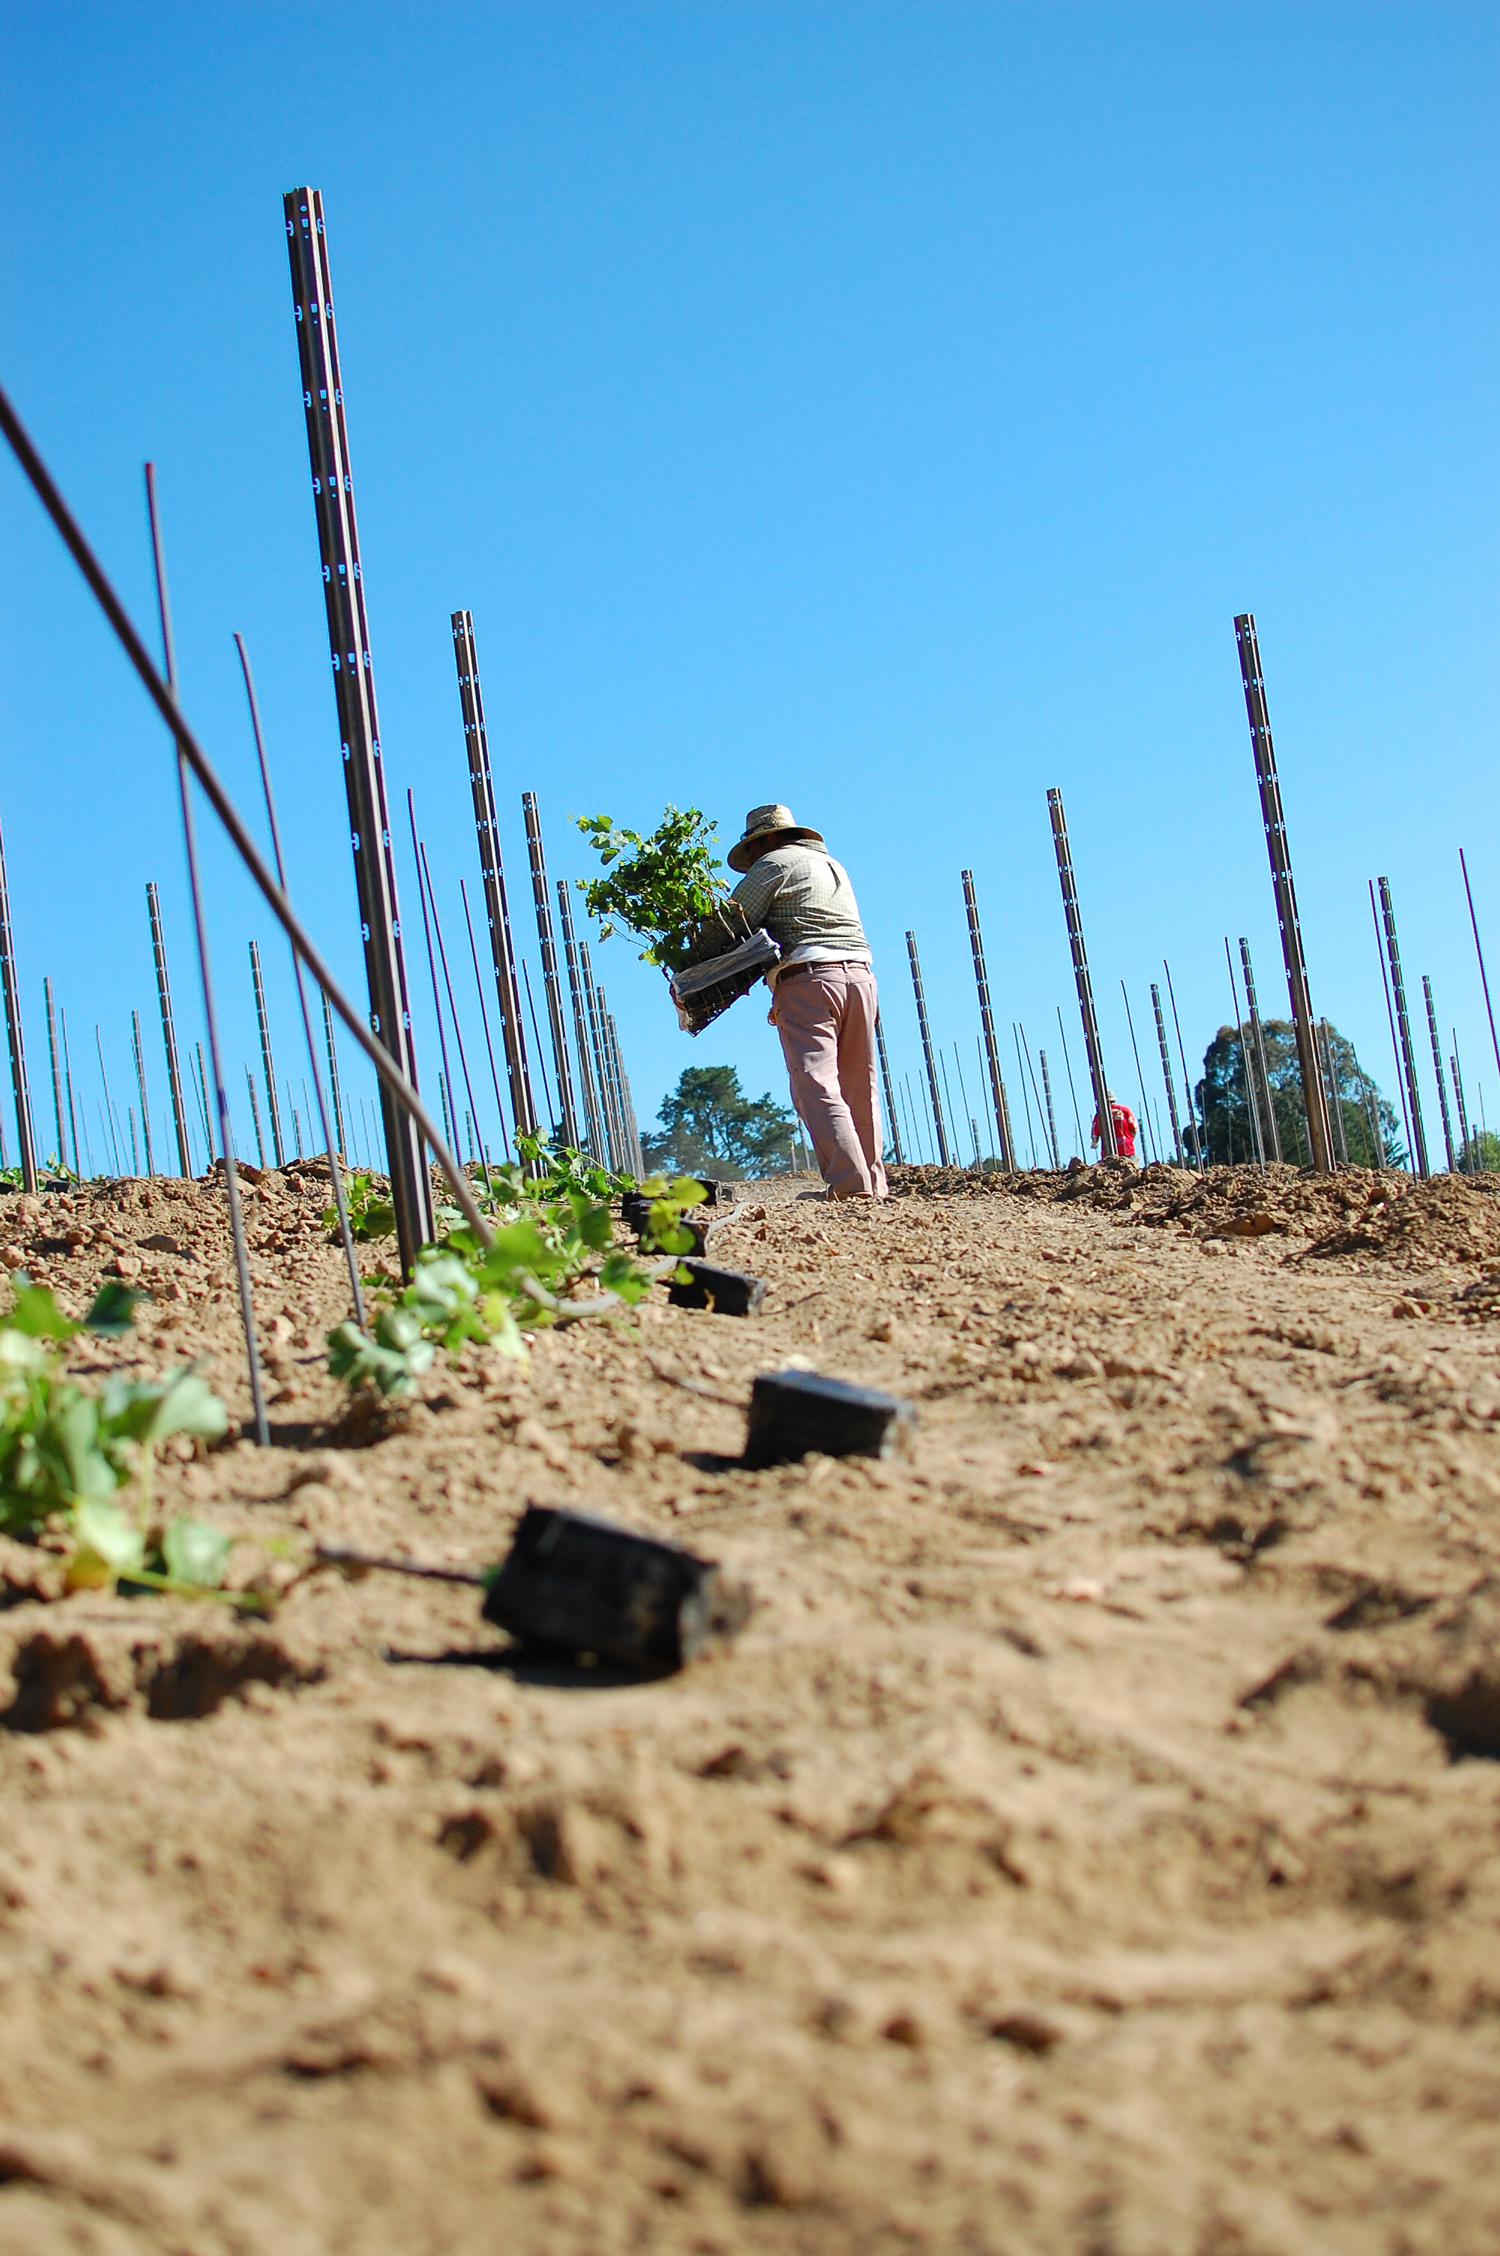 Vineyard_worker_in_a_dirt_vineyard_with_a_blue_sky_background.png